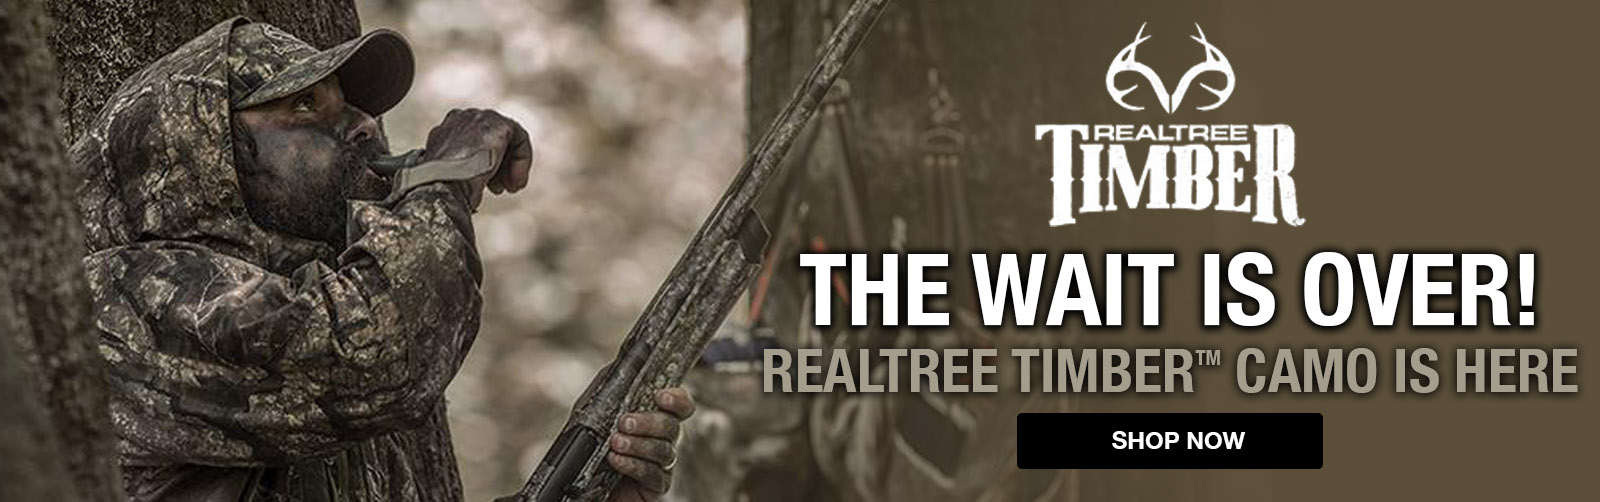 Realtree Timber in Stock Now!